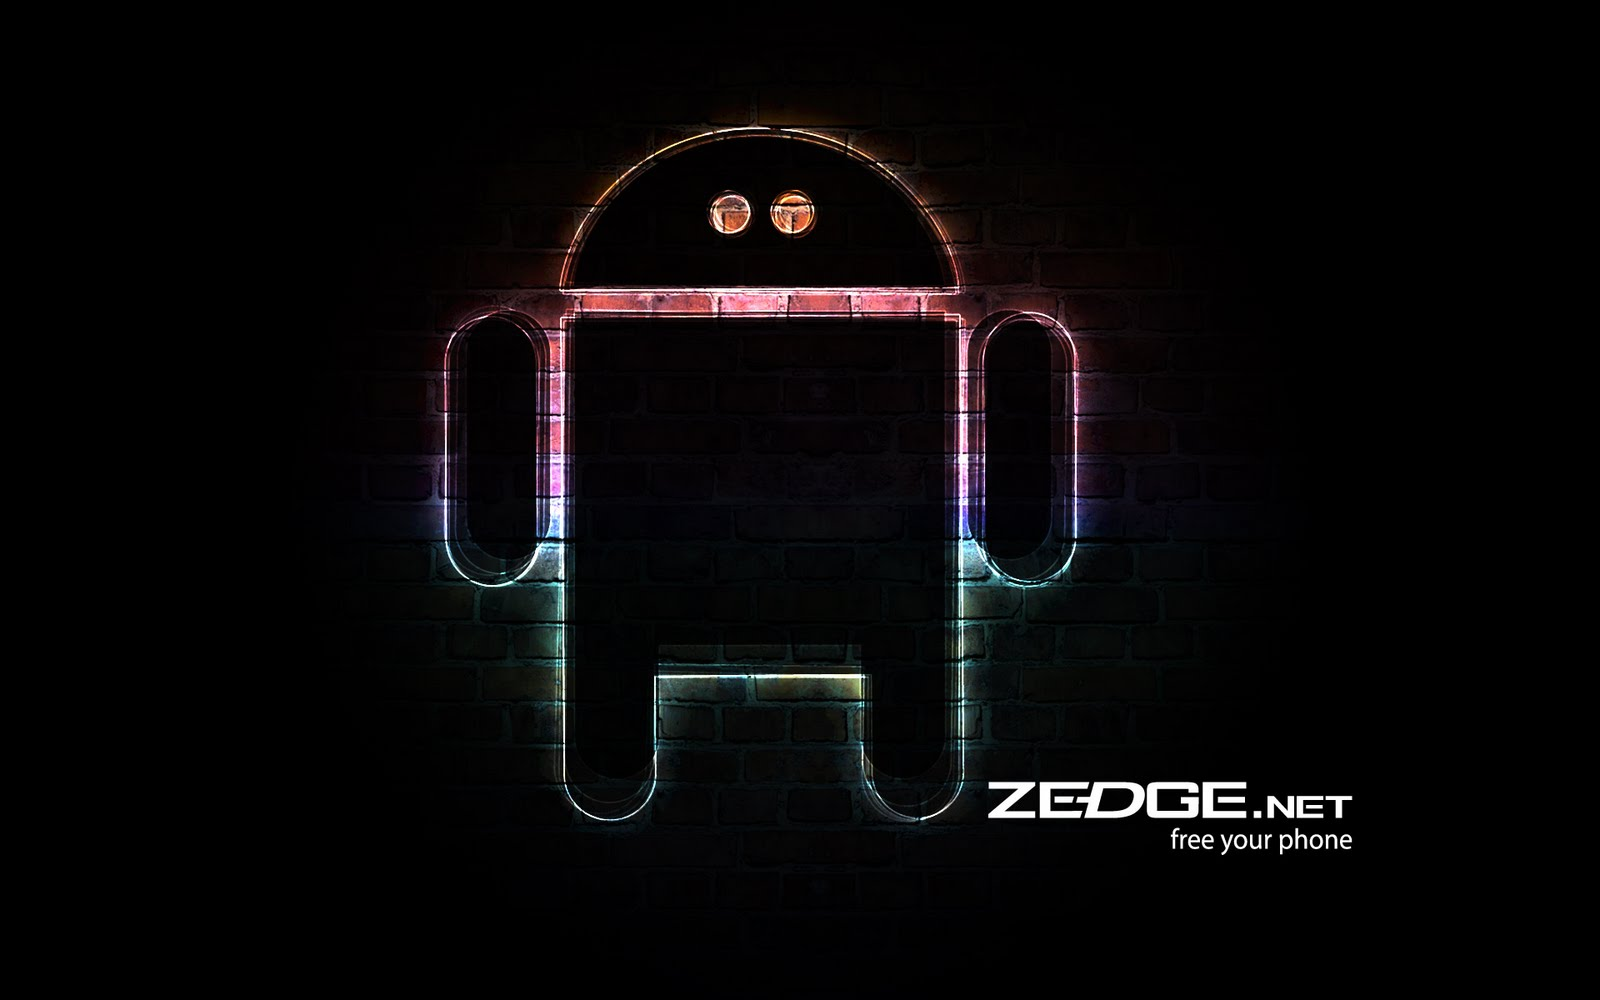 Zedge Wallpapers For Android